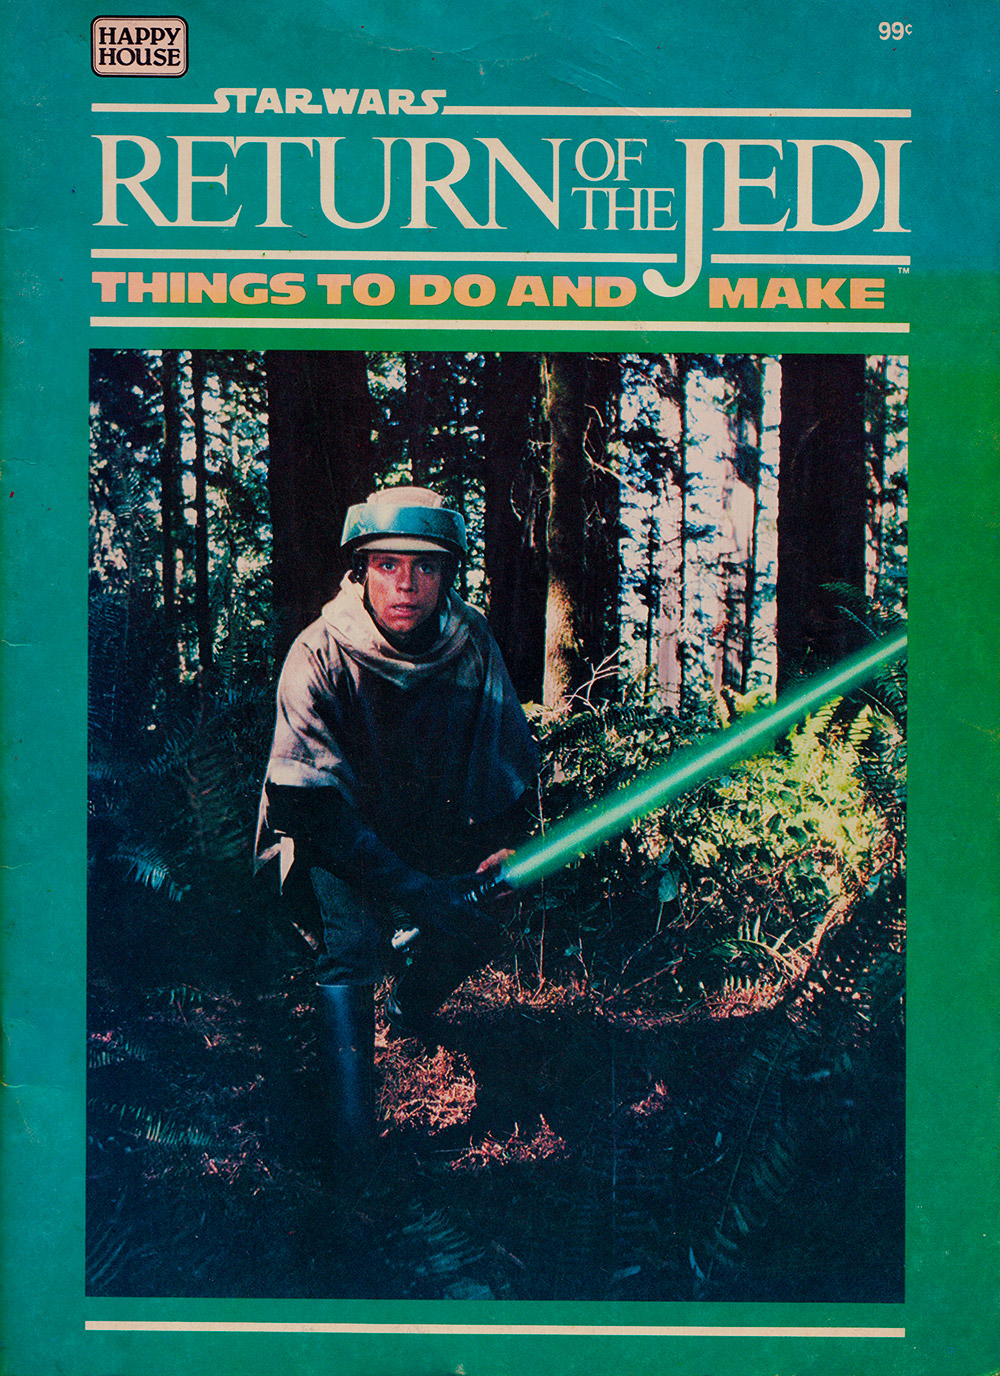 Return of the Jedi - Things to Do and Make activity book